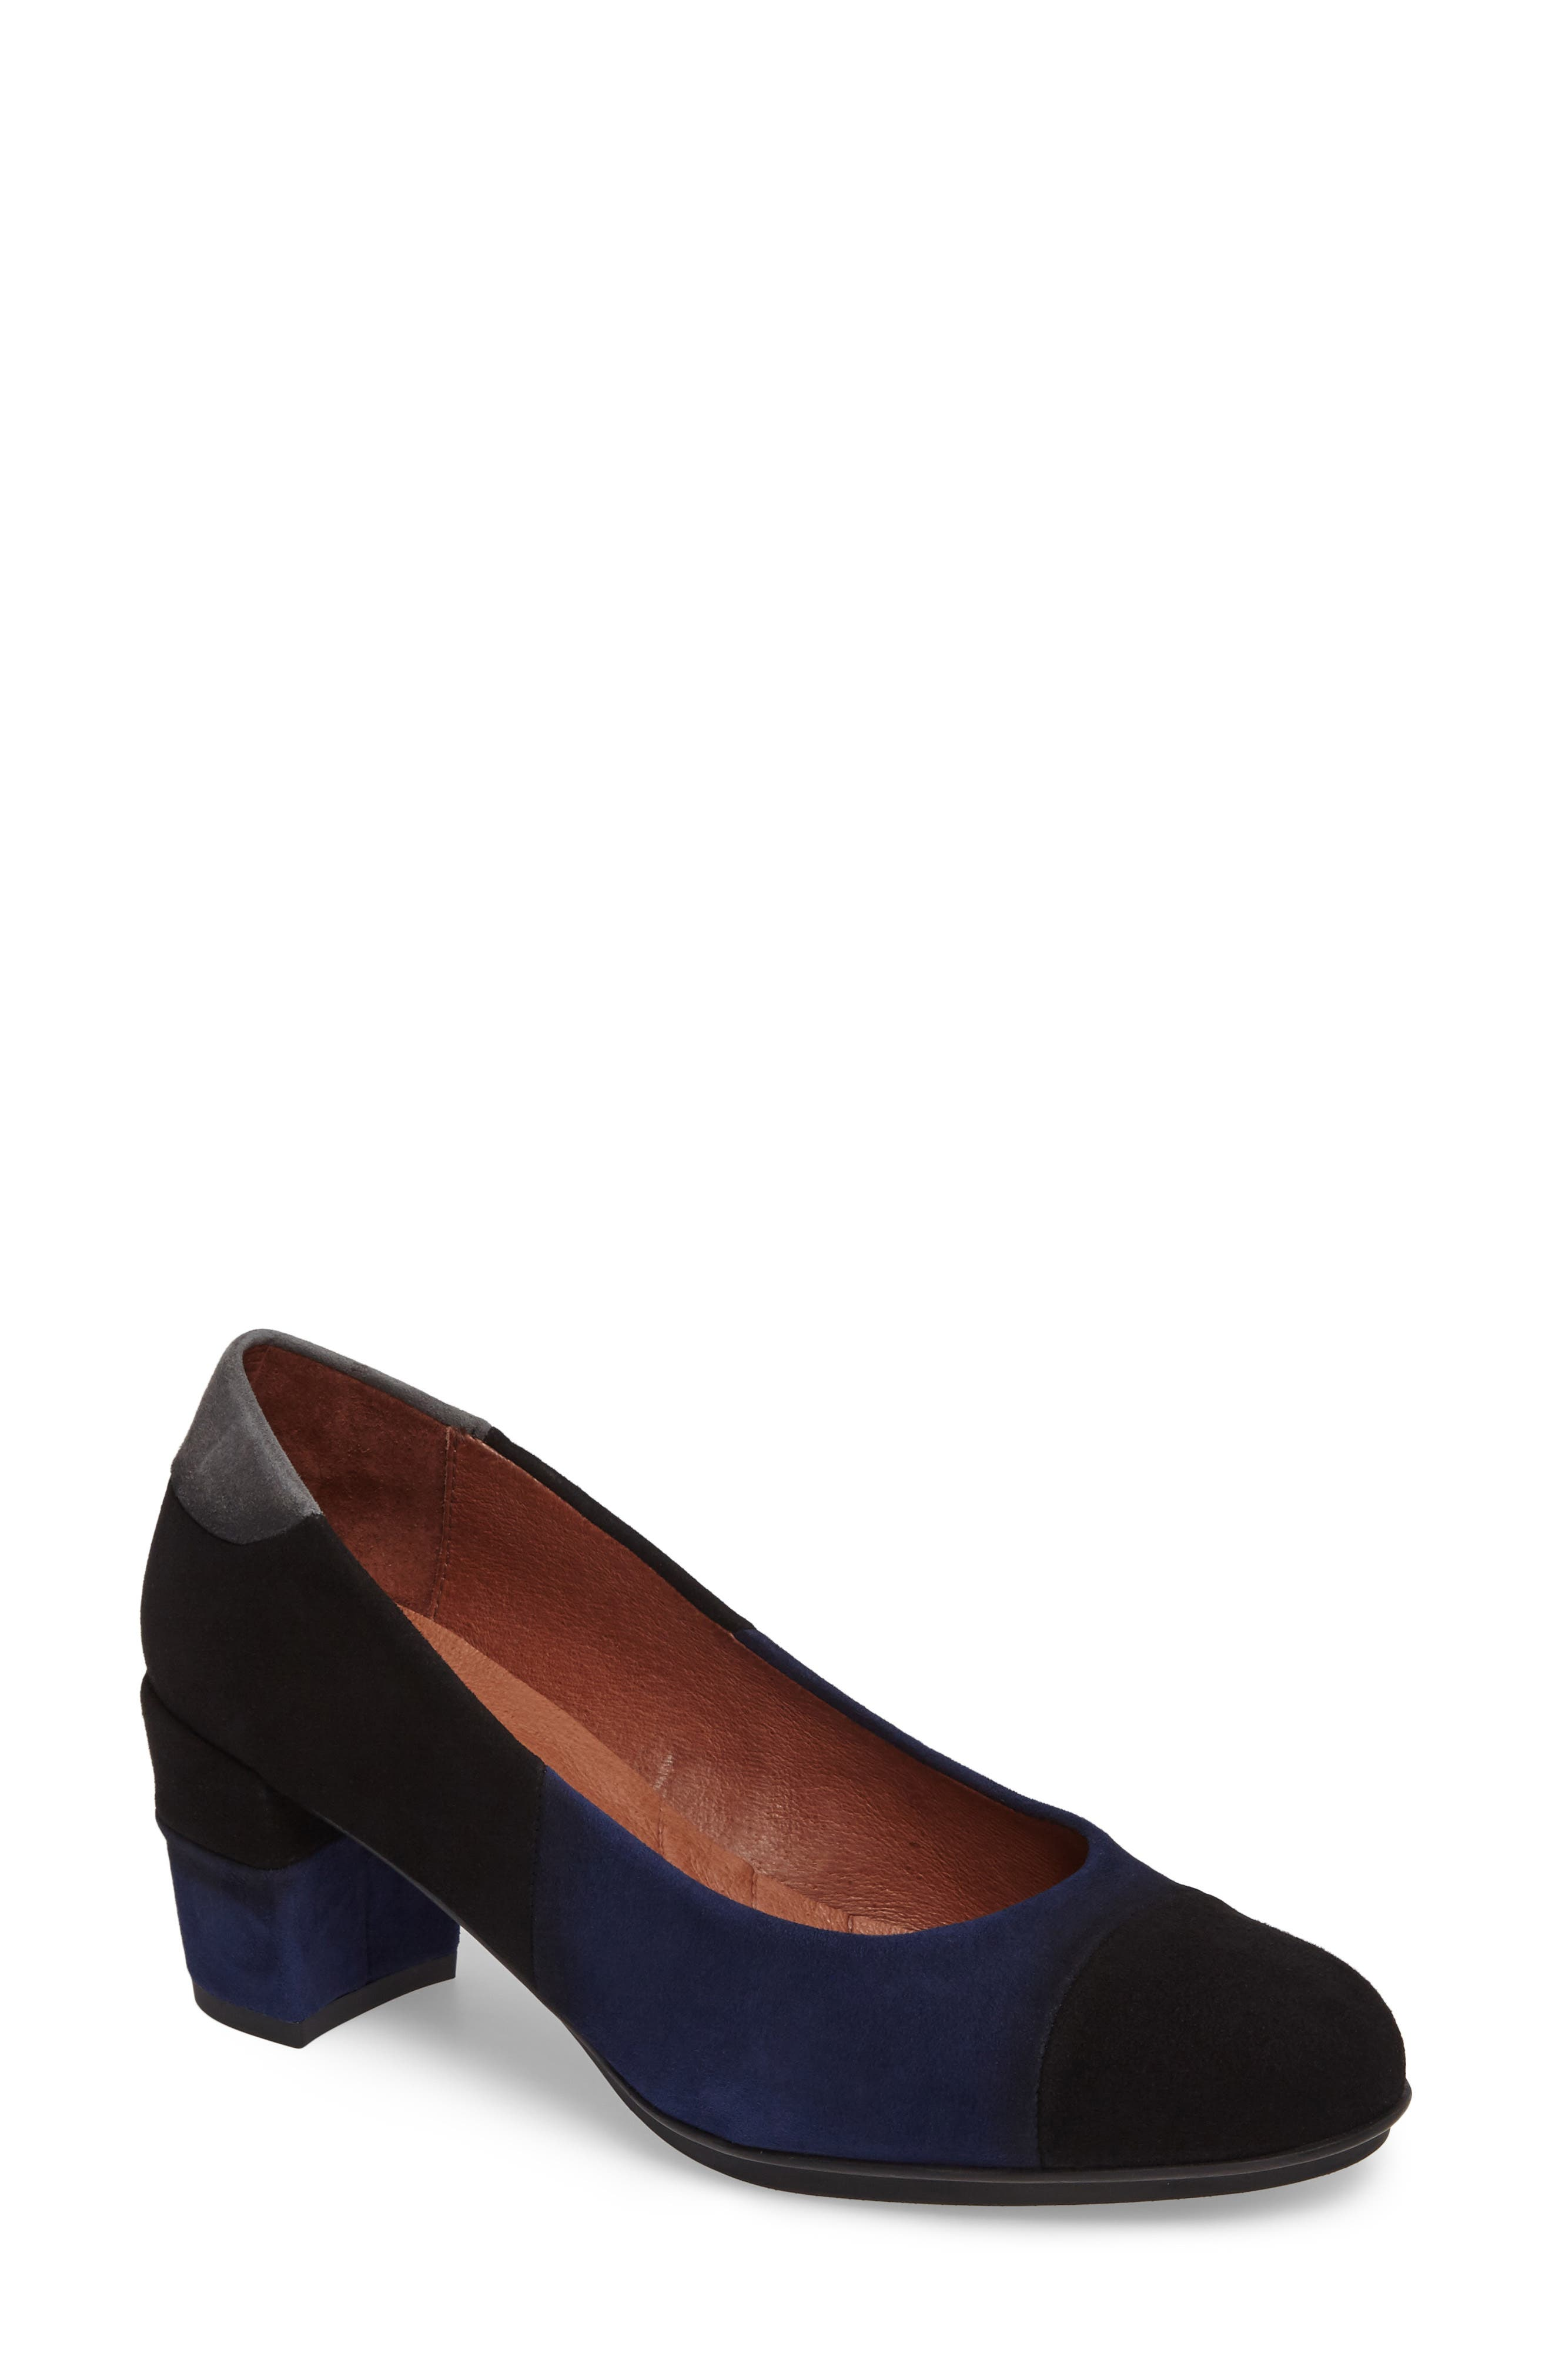 Main Image - Hispanitas Sandy Colorblock Pump (Women)